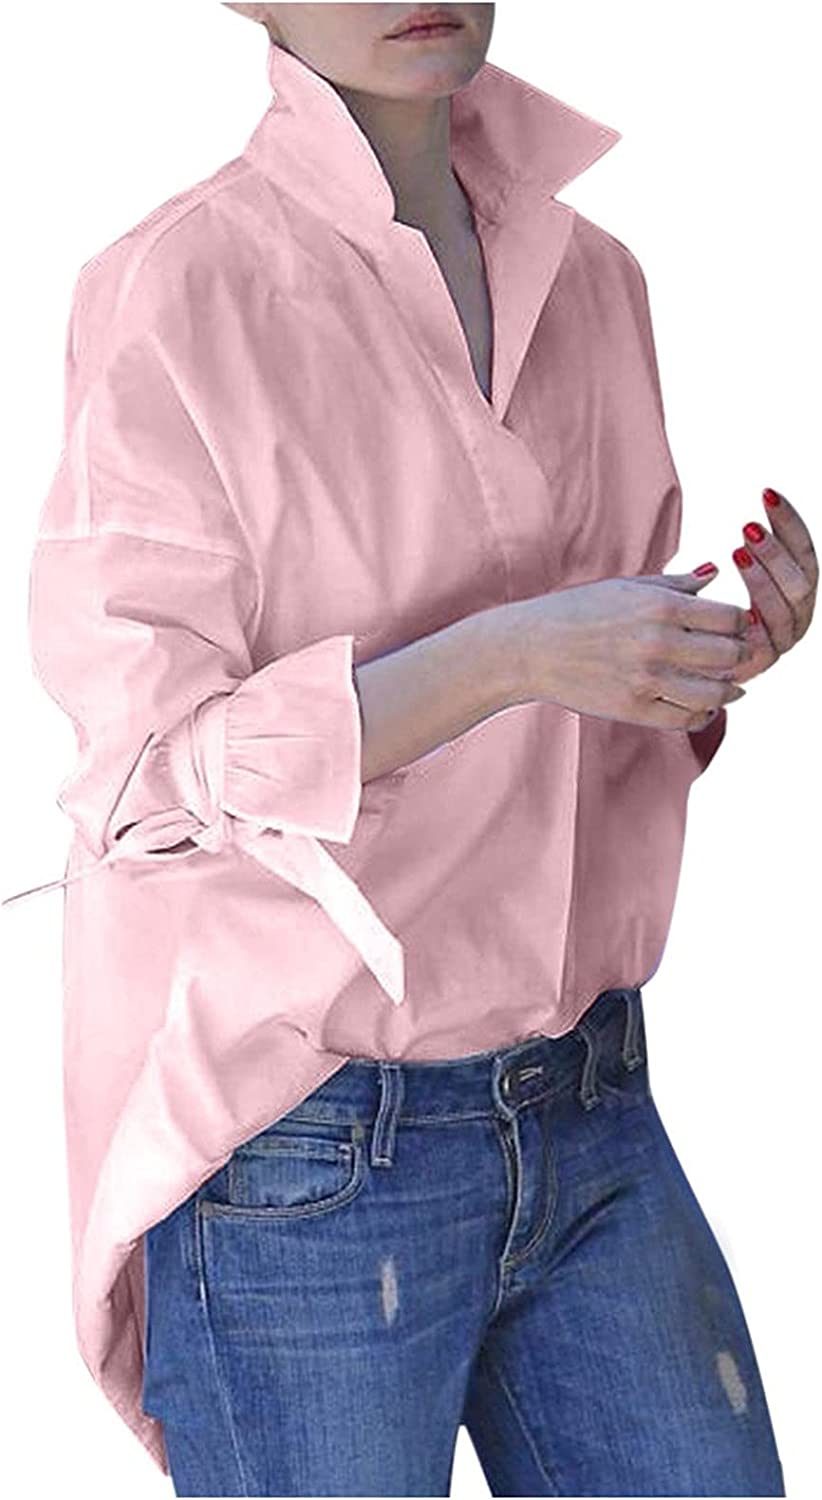 Women's Casual Solid Color Elegant Business Long Sleeve White Shirt Tops V-Neck Office Blouses Tops Button